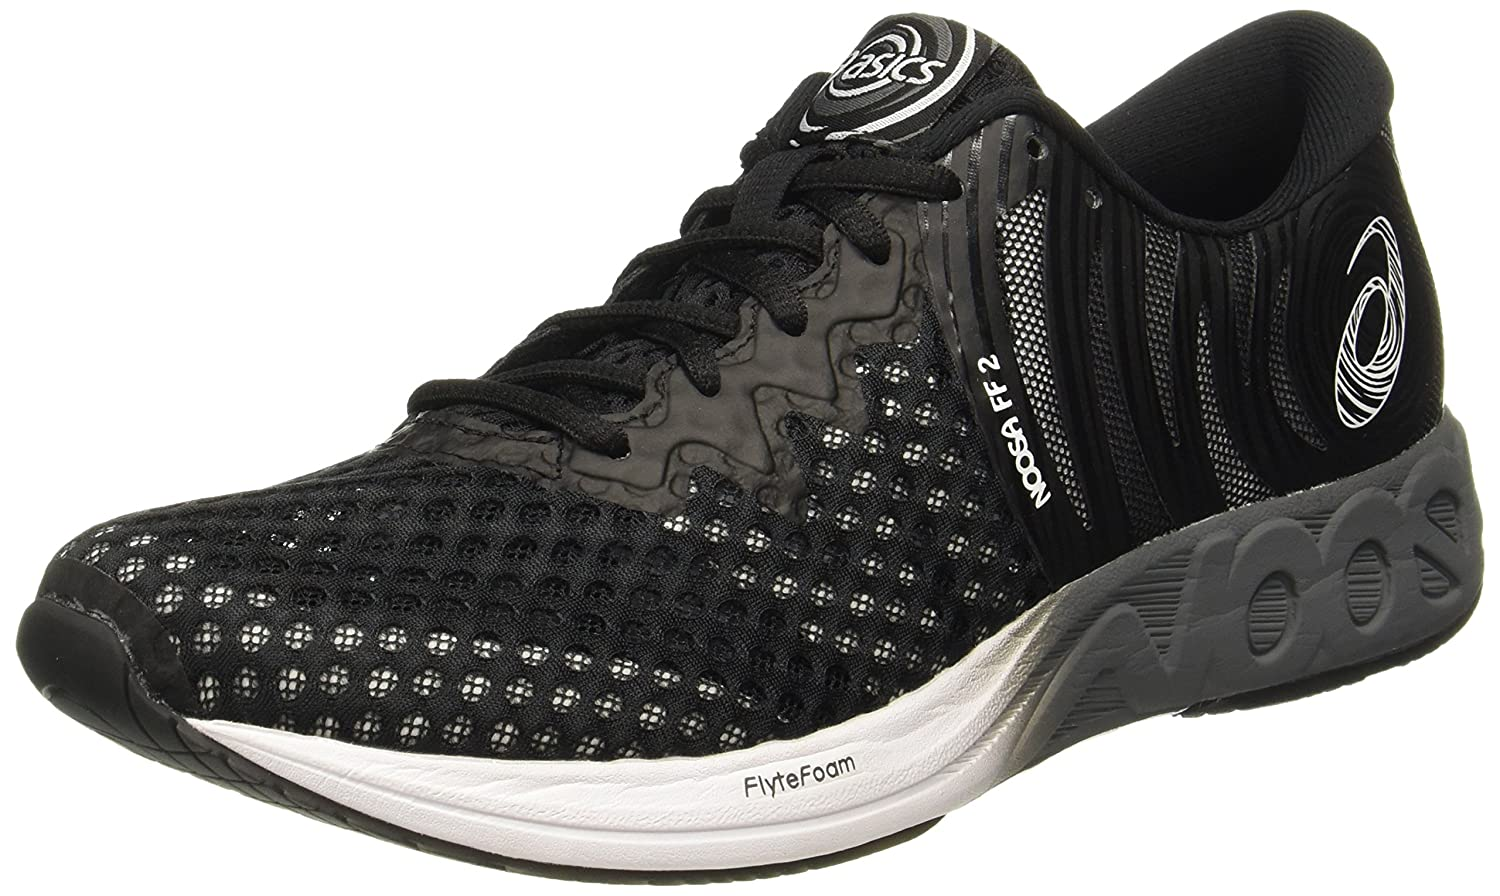 ASICS Men s Noosa FF 2 Running Shoes  Buy Online at Low Prices in India -  Amazon.in 92b84f88813